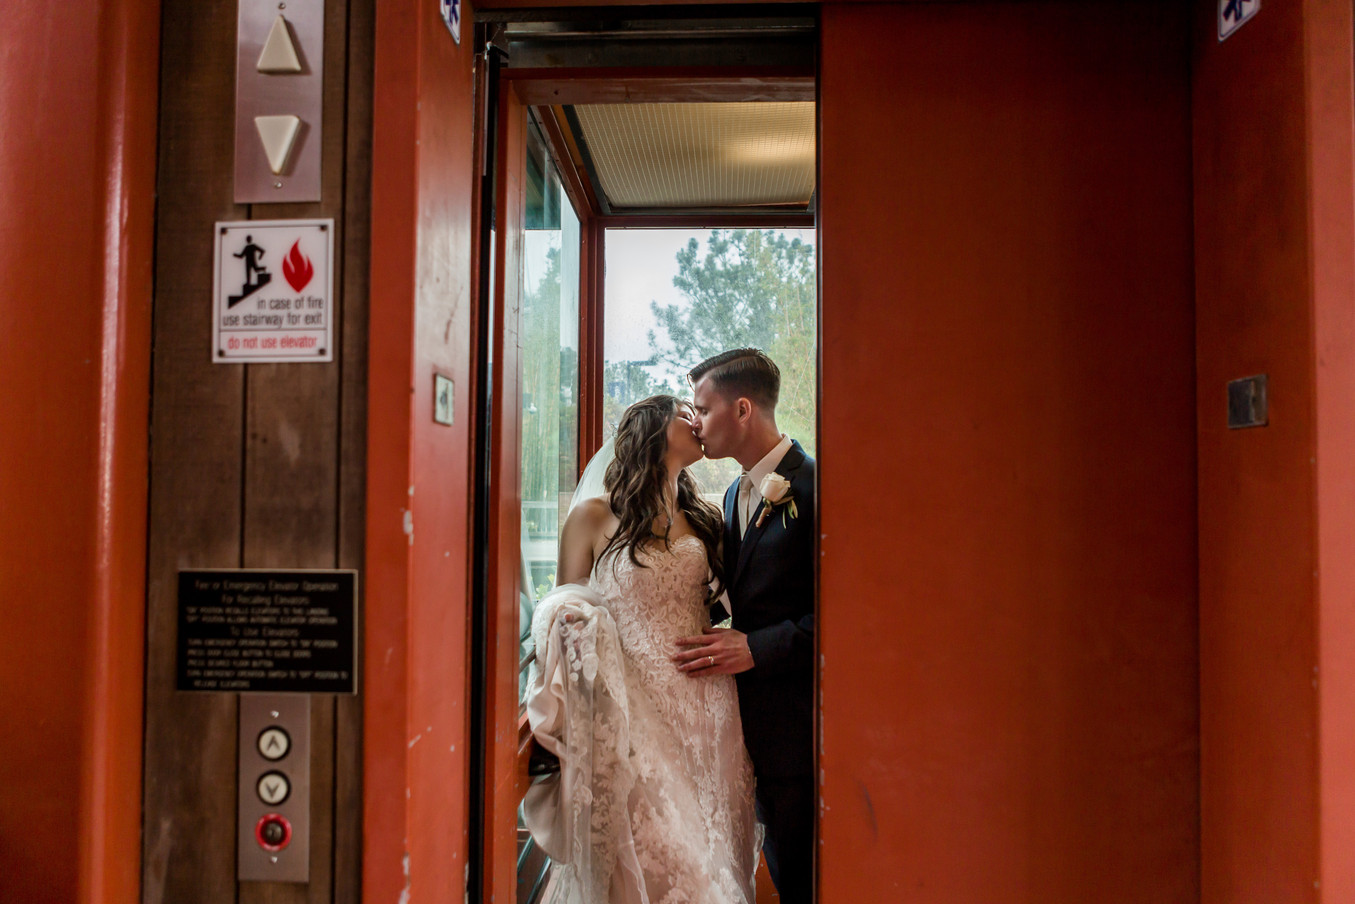 San Diego Wedding Photographer, Best of 2018 Wedding Photography, Berlynn Photography, San Diego Wedding Photography, bride and groom kiss in elevator